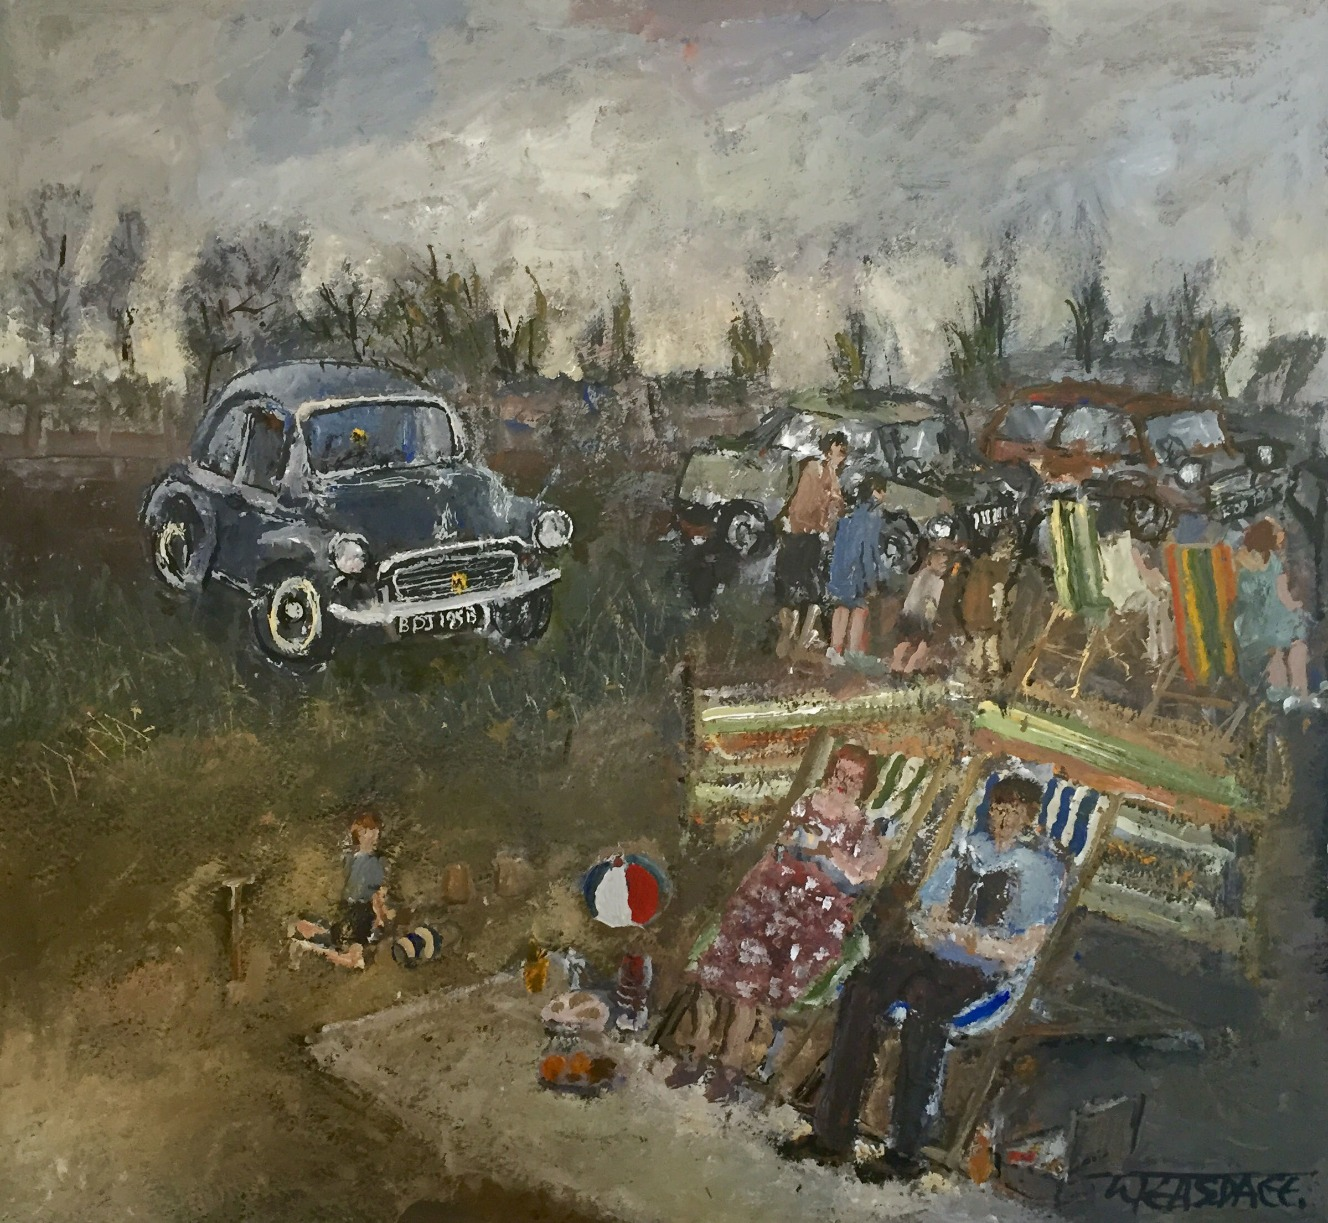 A Family Day Out by Malcolm Teasdale